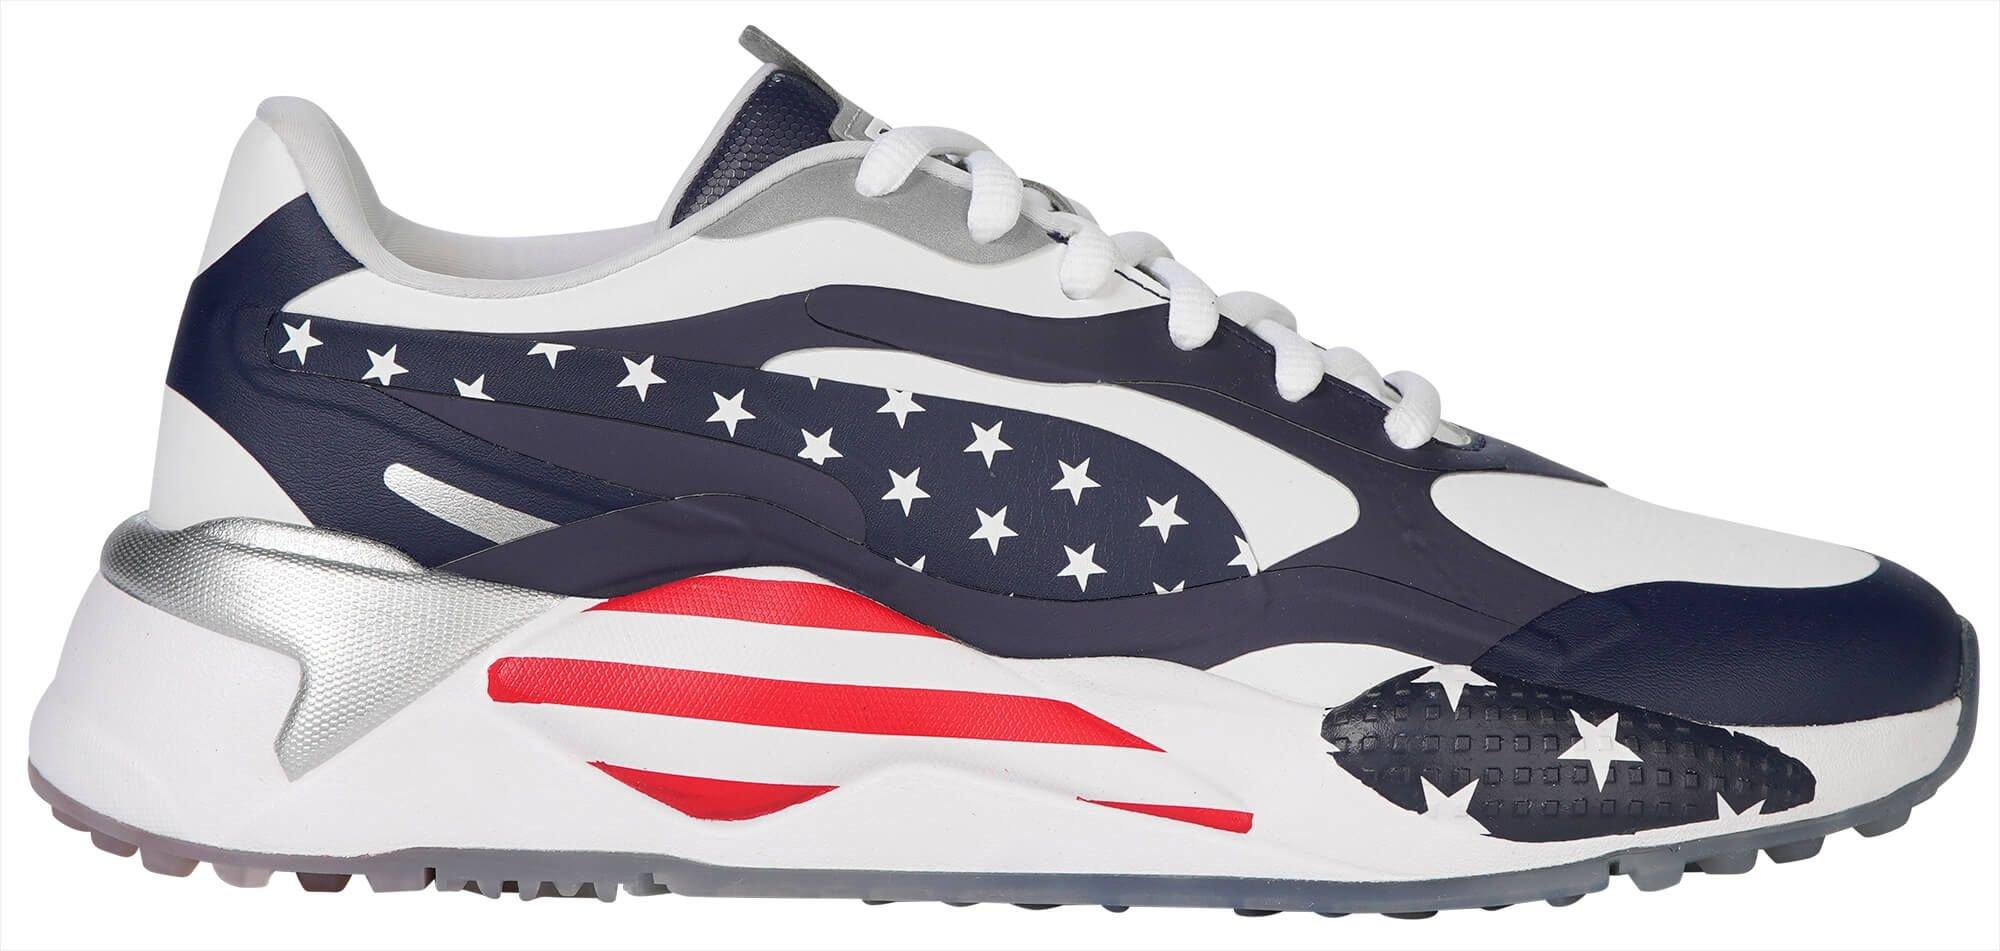 Puma Rs G Usa Golf Shoes 2020 White Peacoat Red Carl S Golfland